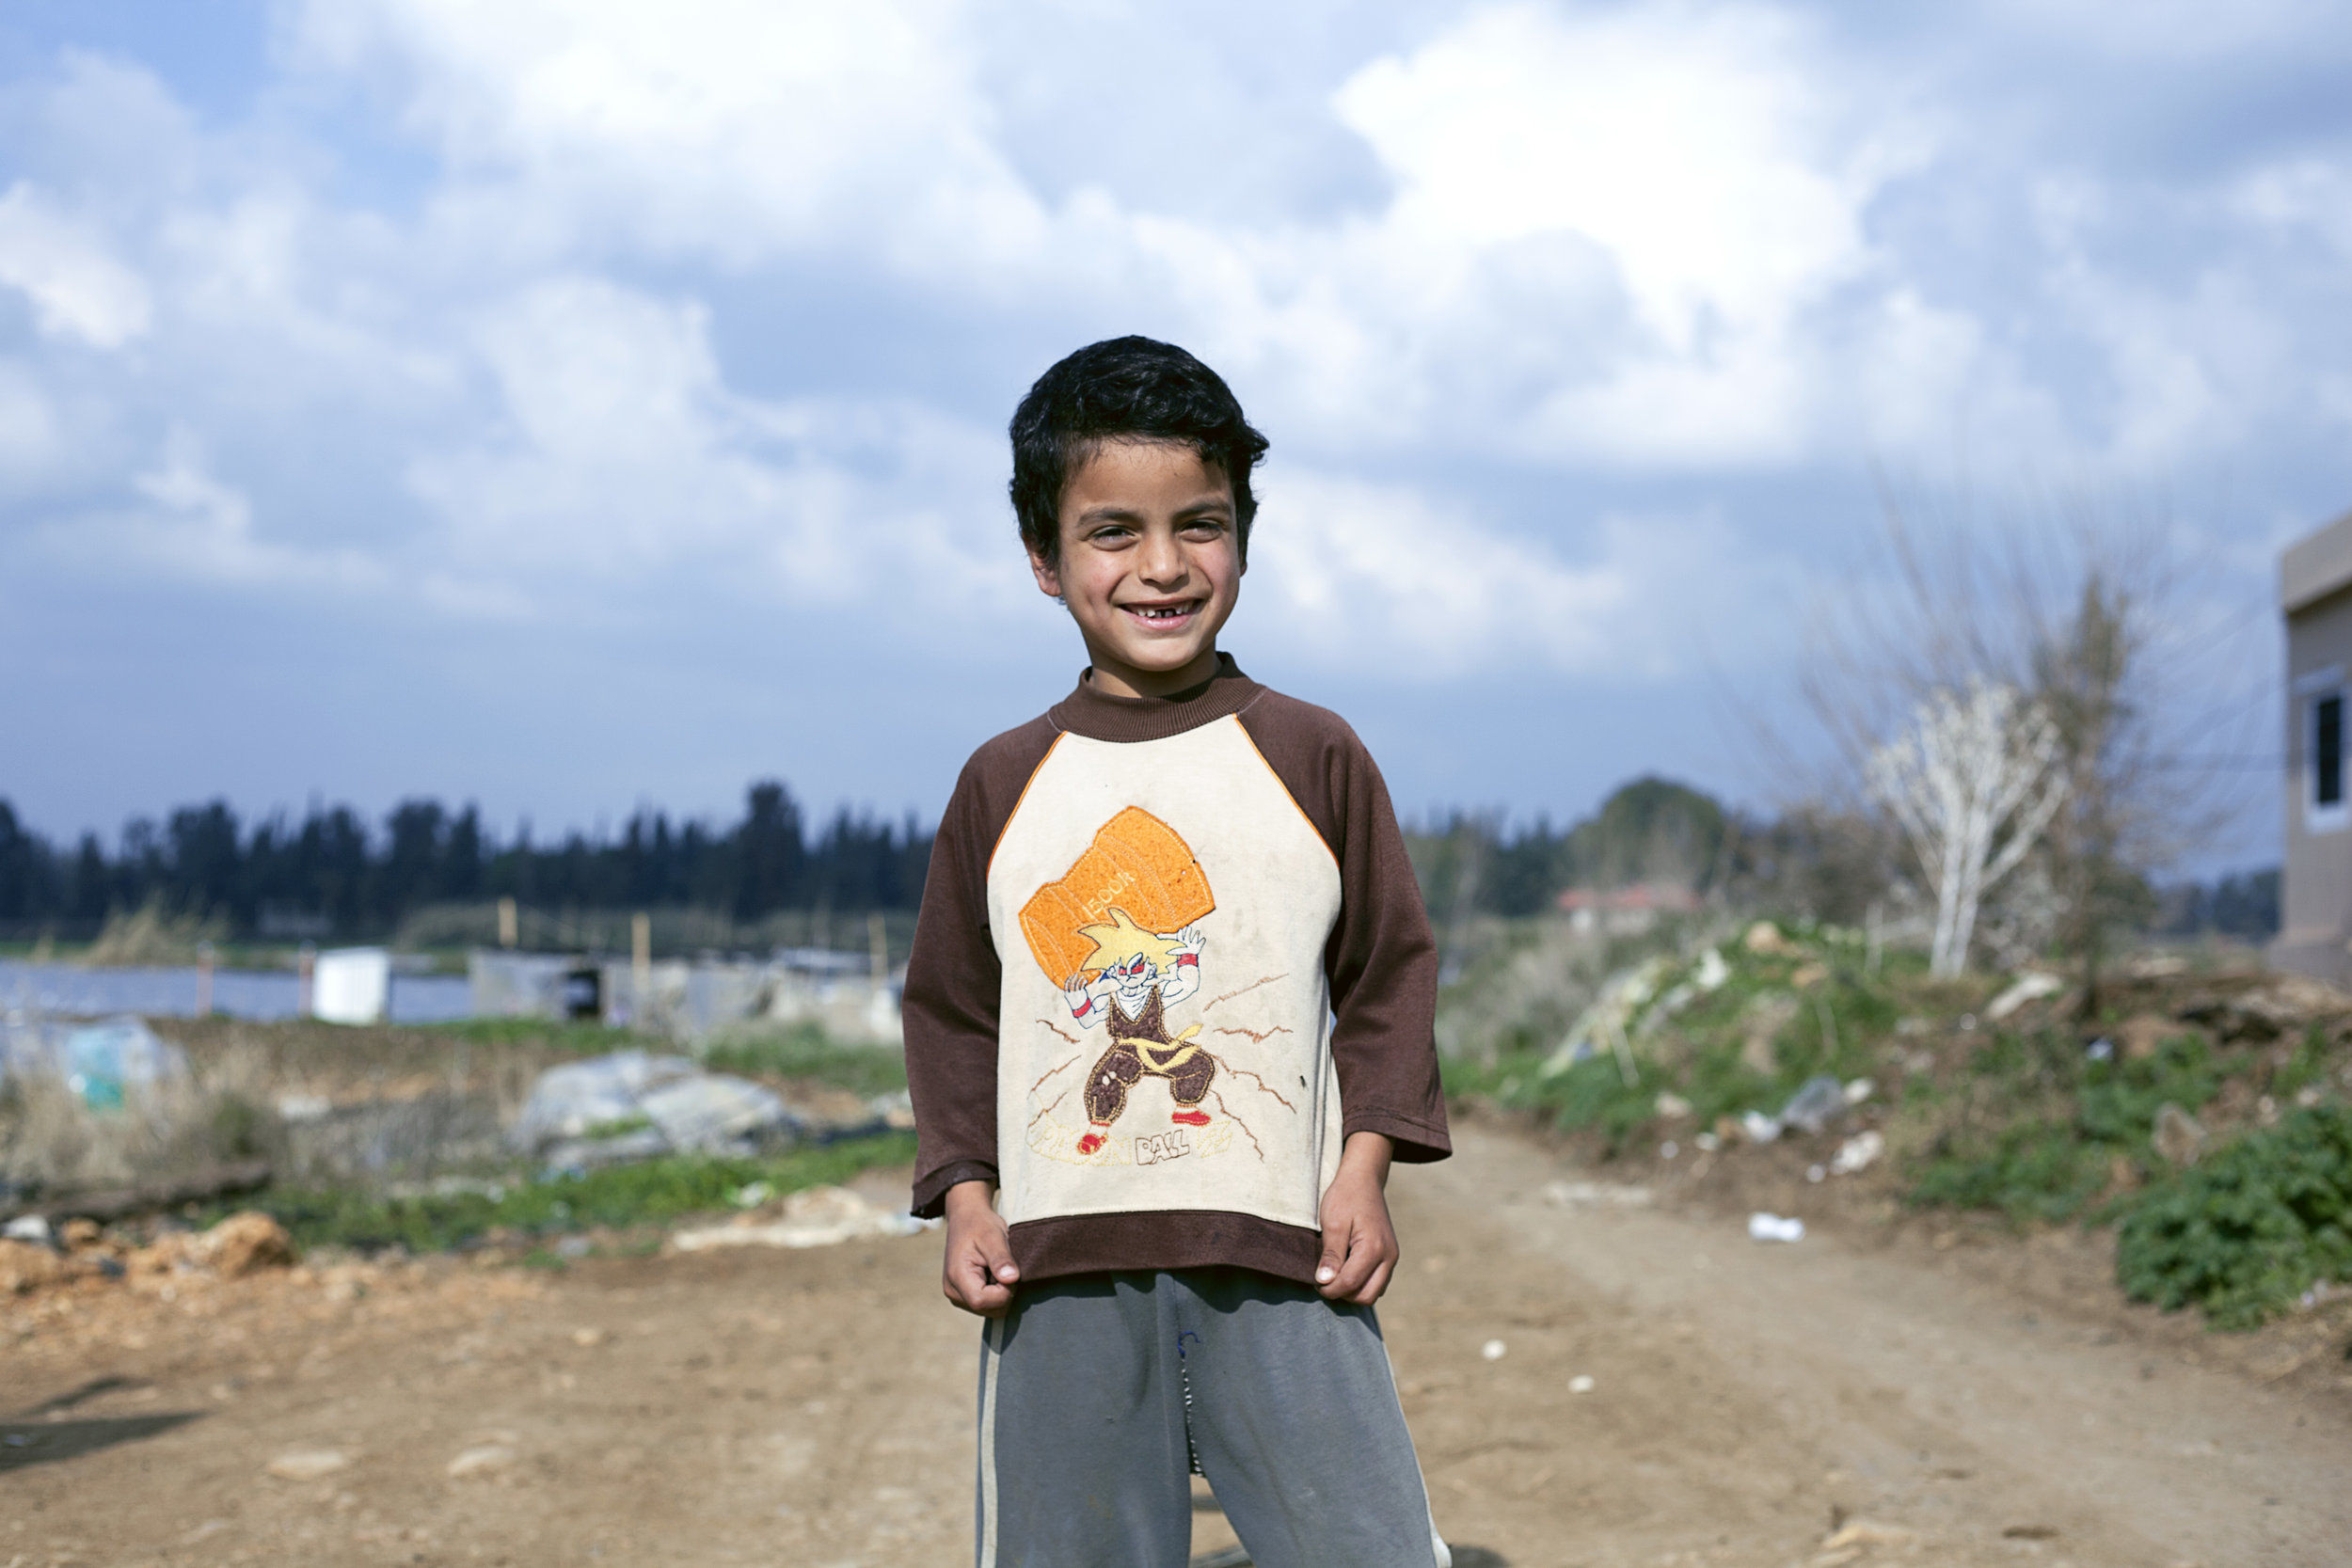 Amjad refugee from Syria in refugee camp in Lebanon